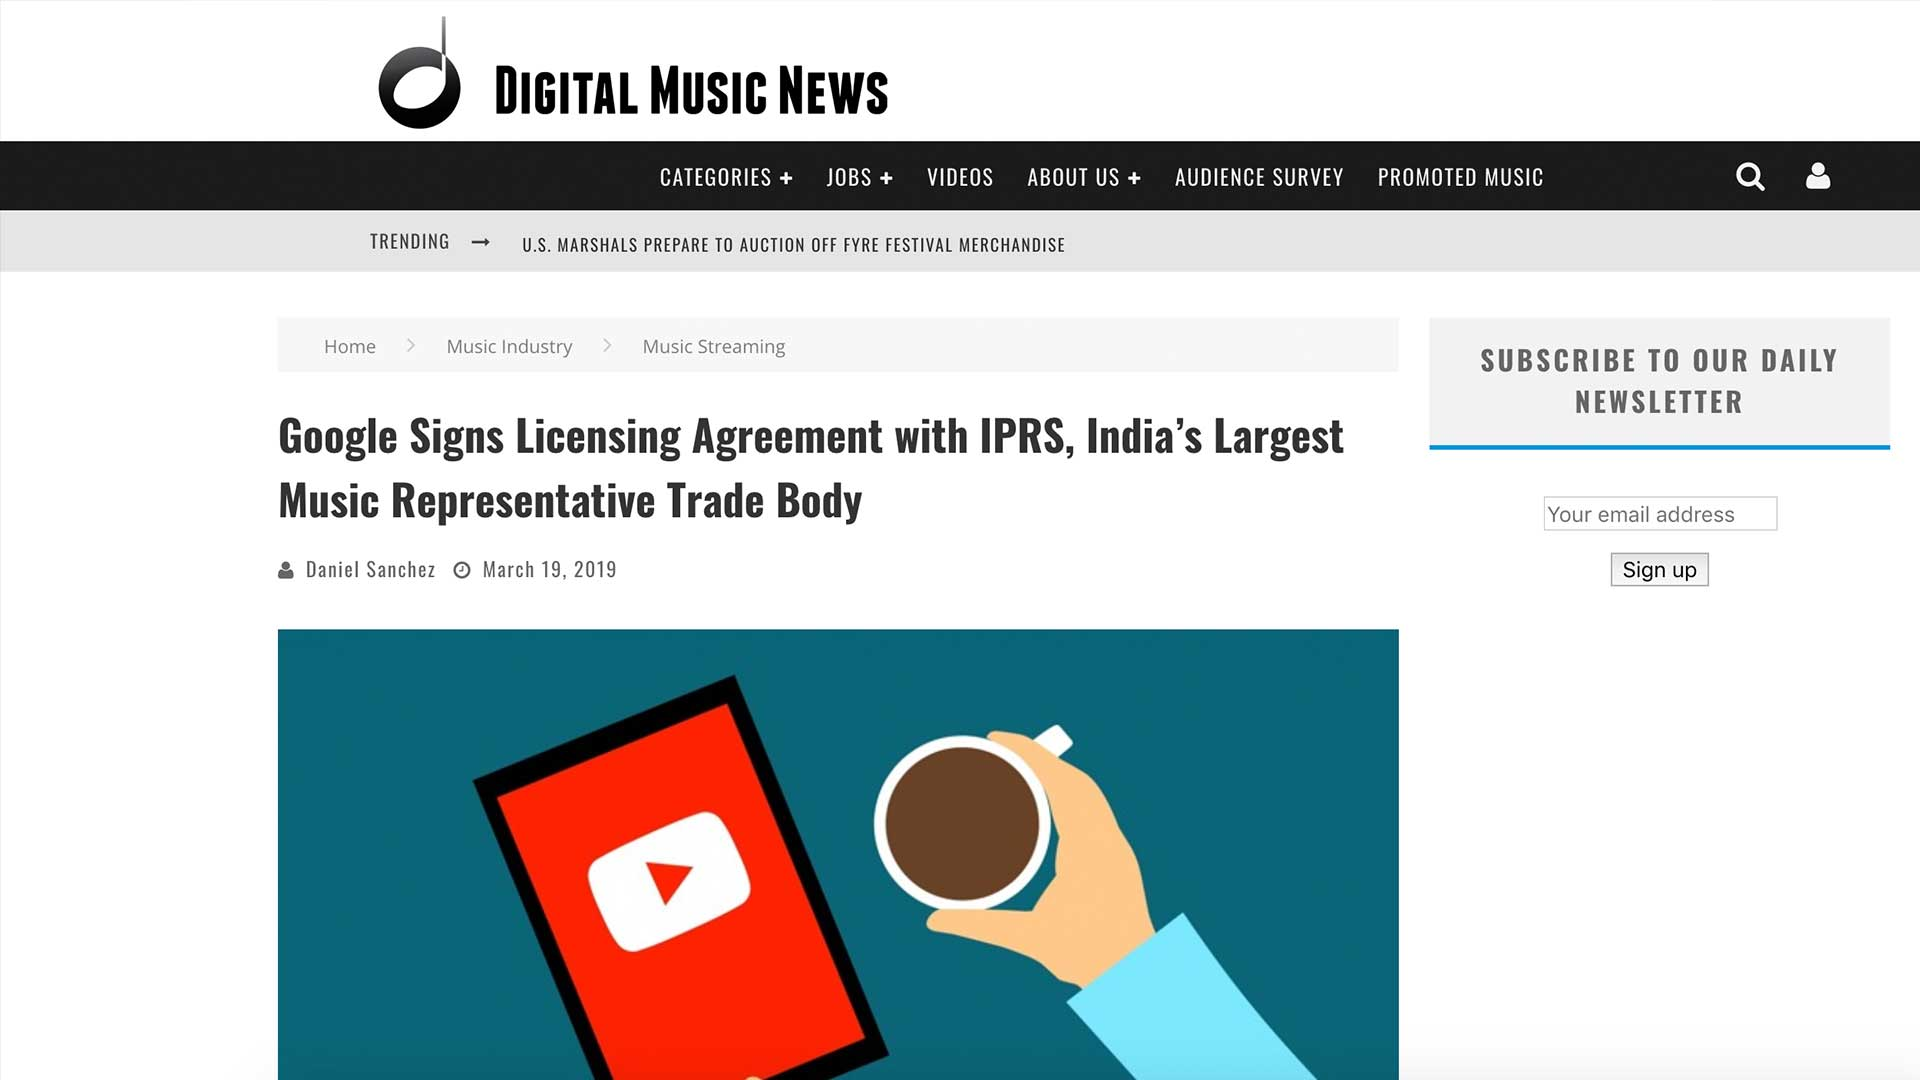 Fairness Rocks News Google Signs Licensing Agreement with IPRS, India's Largest Music Representative Trade Body